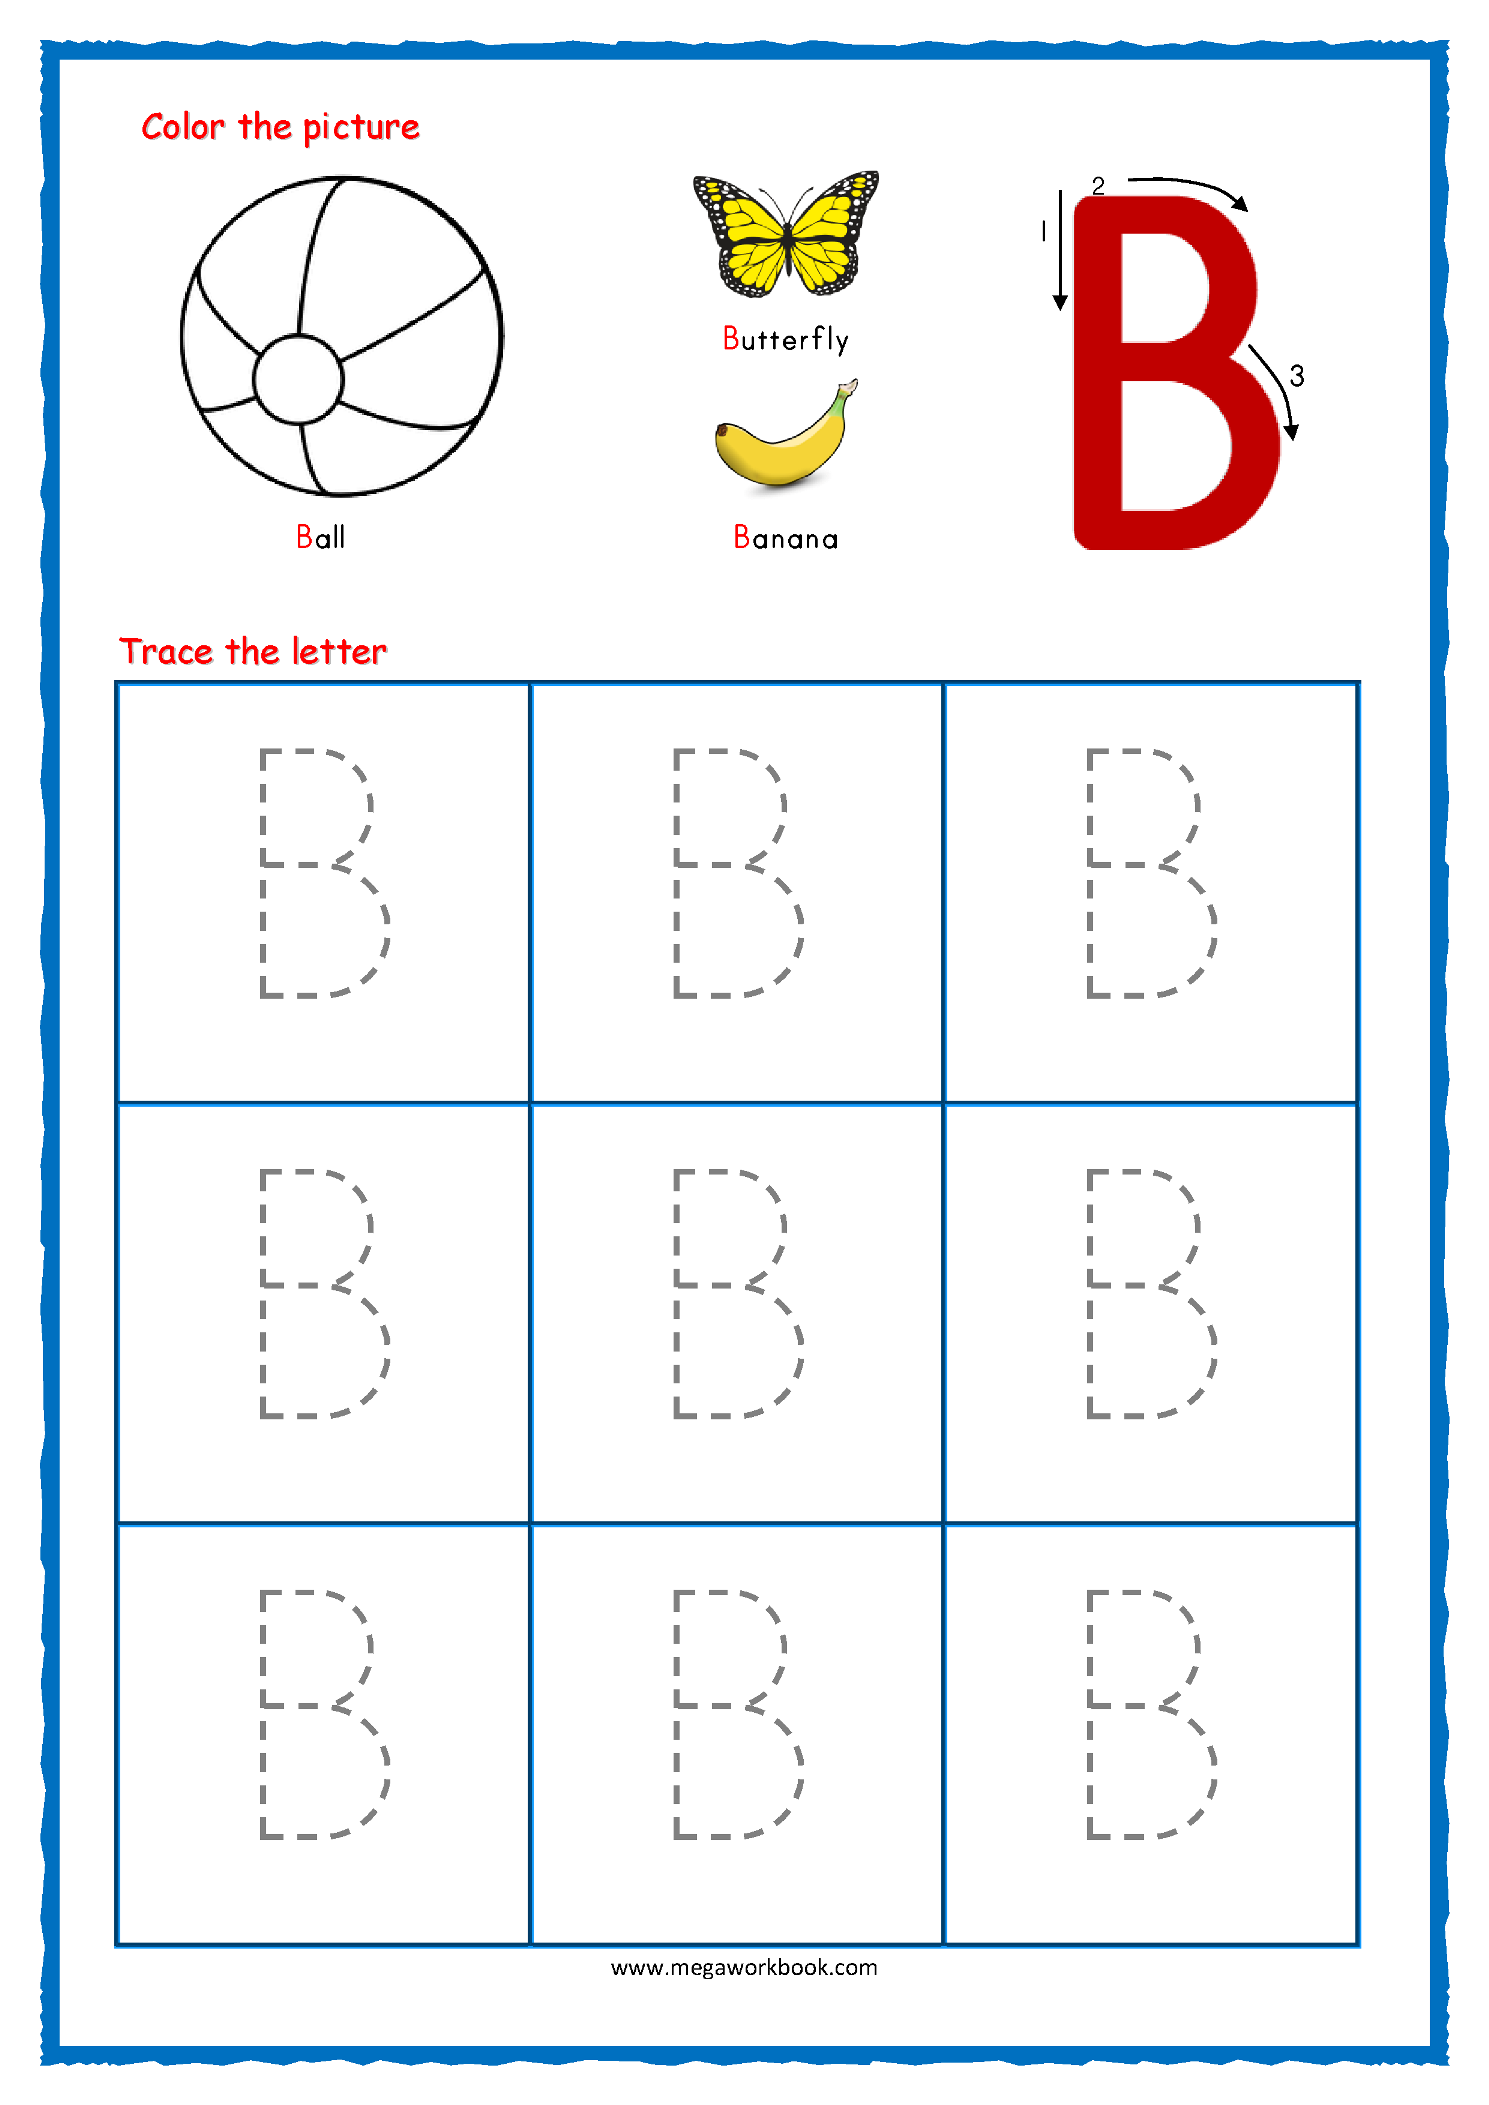 Capital_Letter_Tracing_With_Crayons_02_Alphabet_B Coloring with regard to Letter B Tracing Worksheets Free